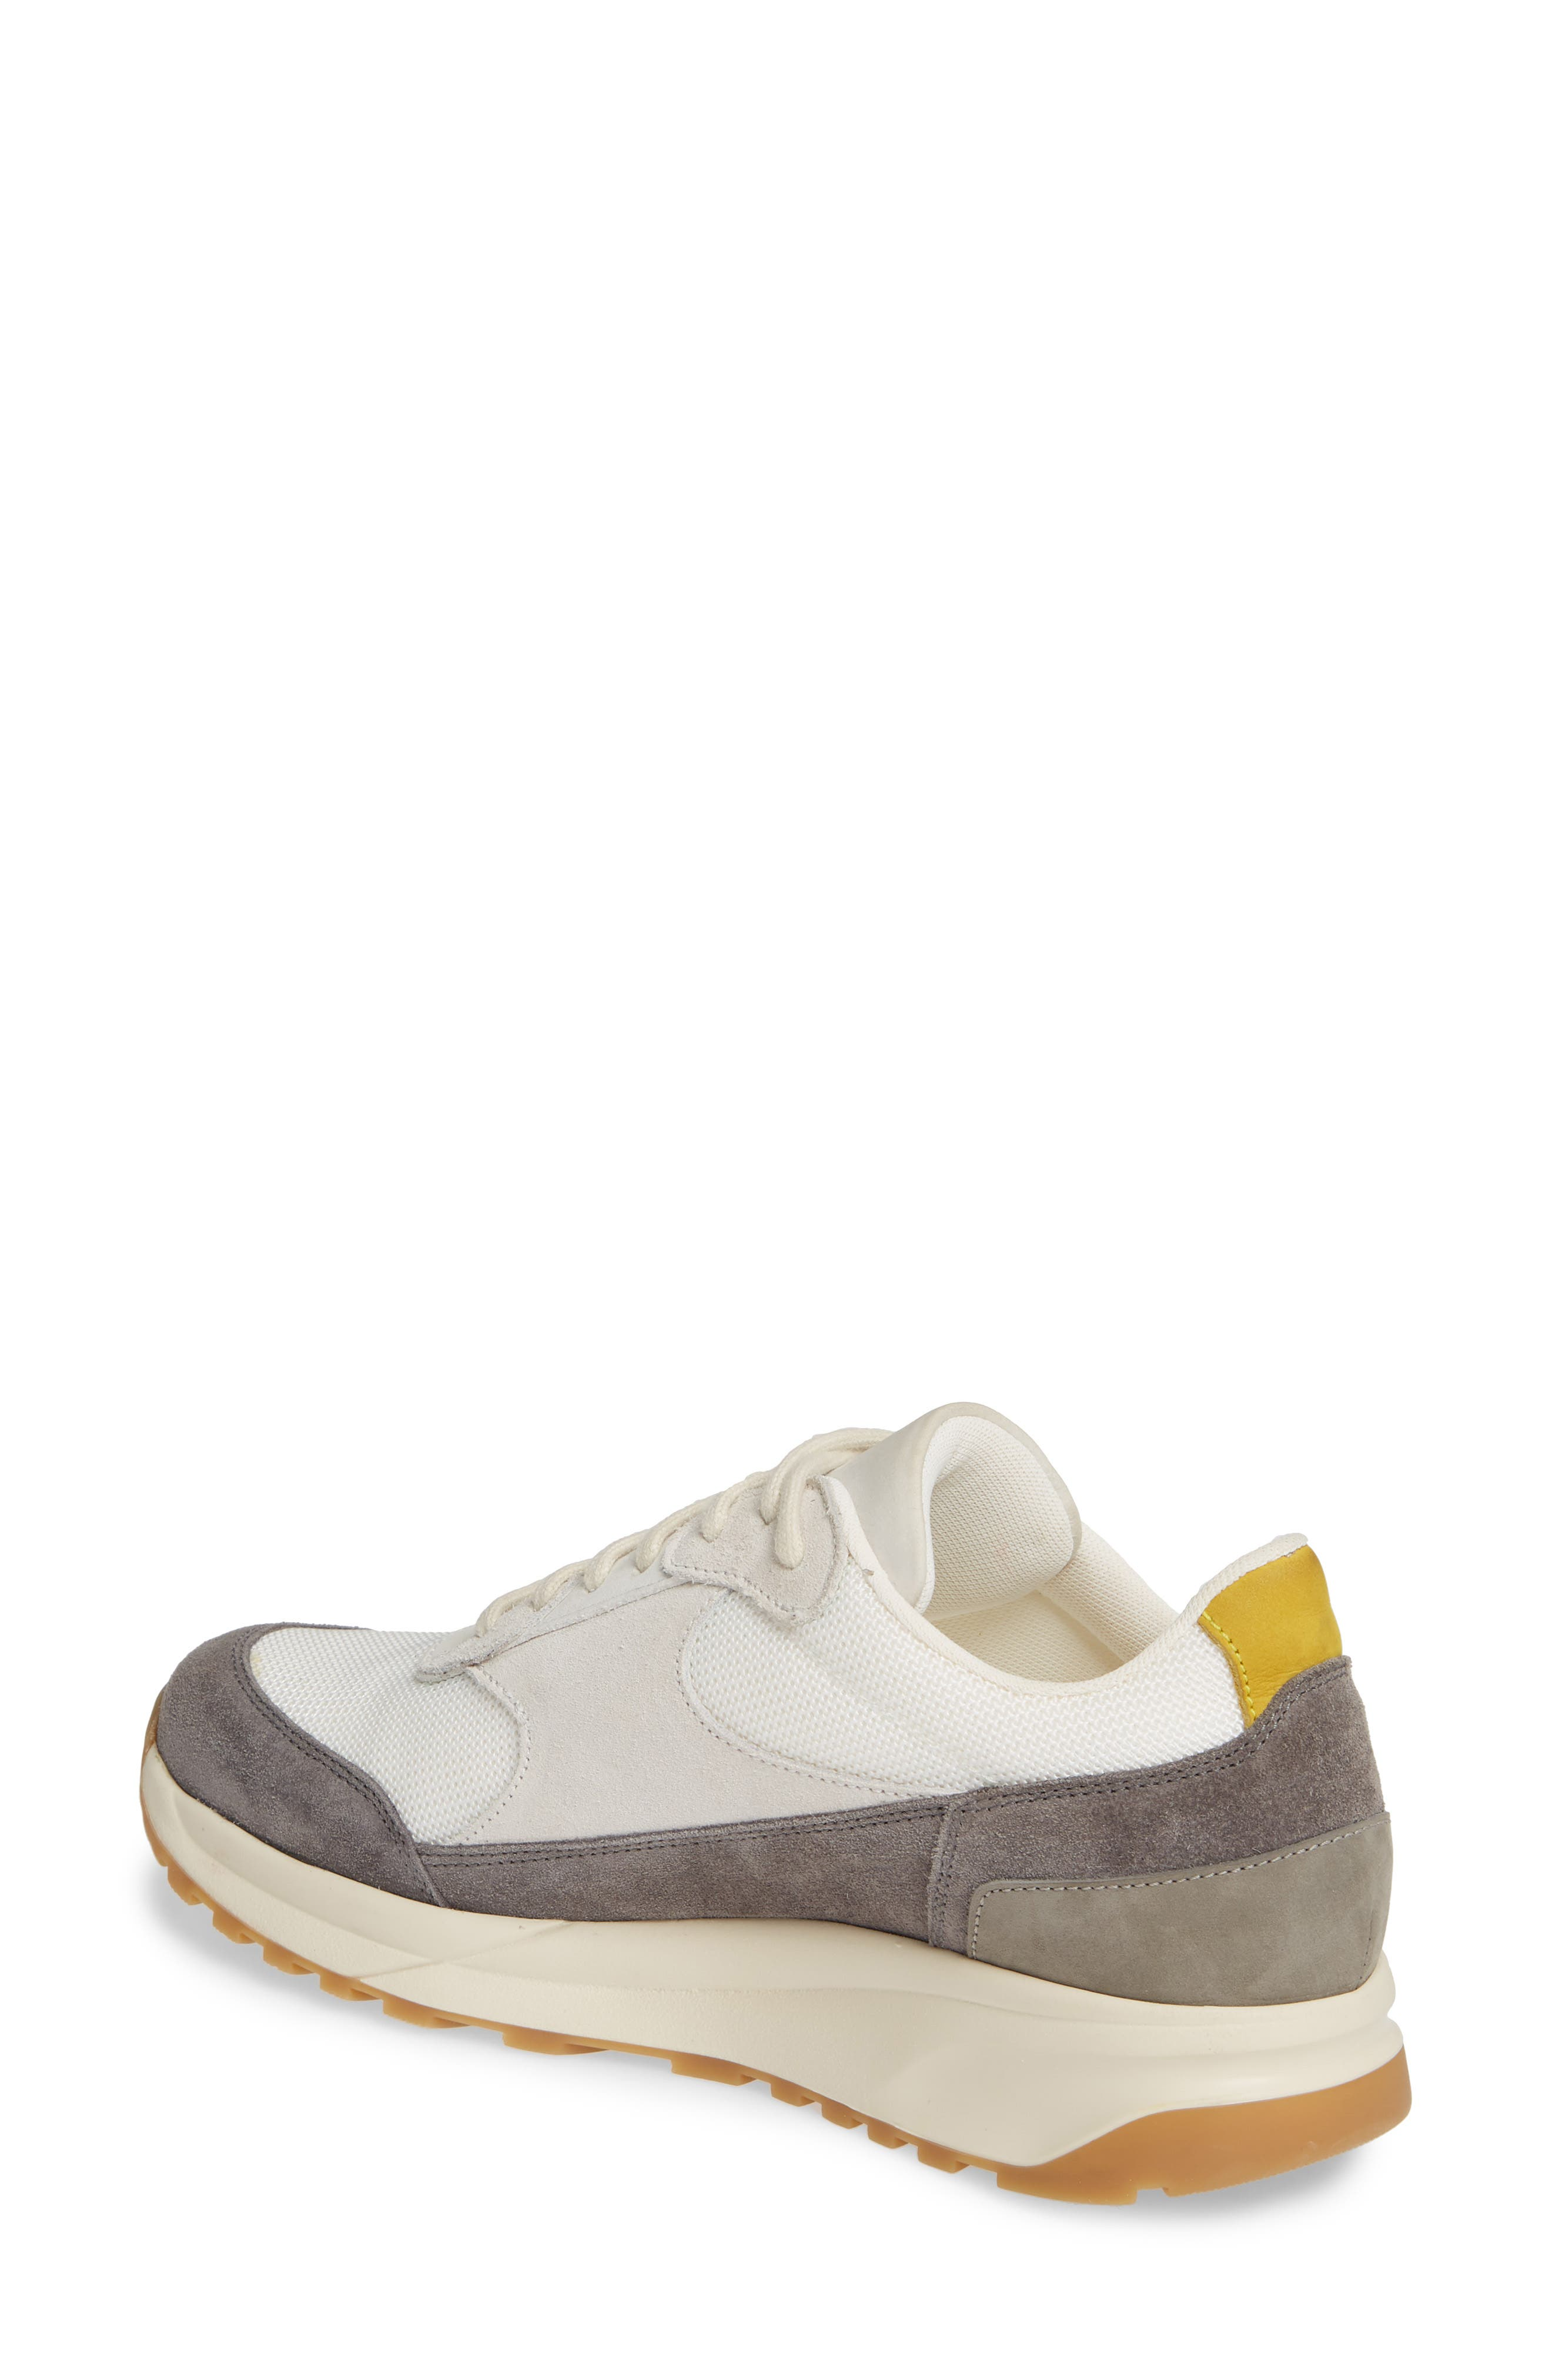 COMMON PROJECTS, New Track Sneaker, Alternate thumbnail 2, color, WHITE/ GREY